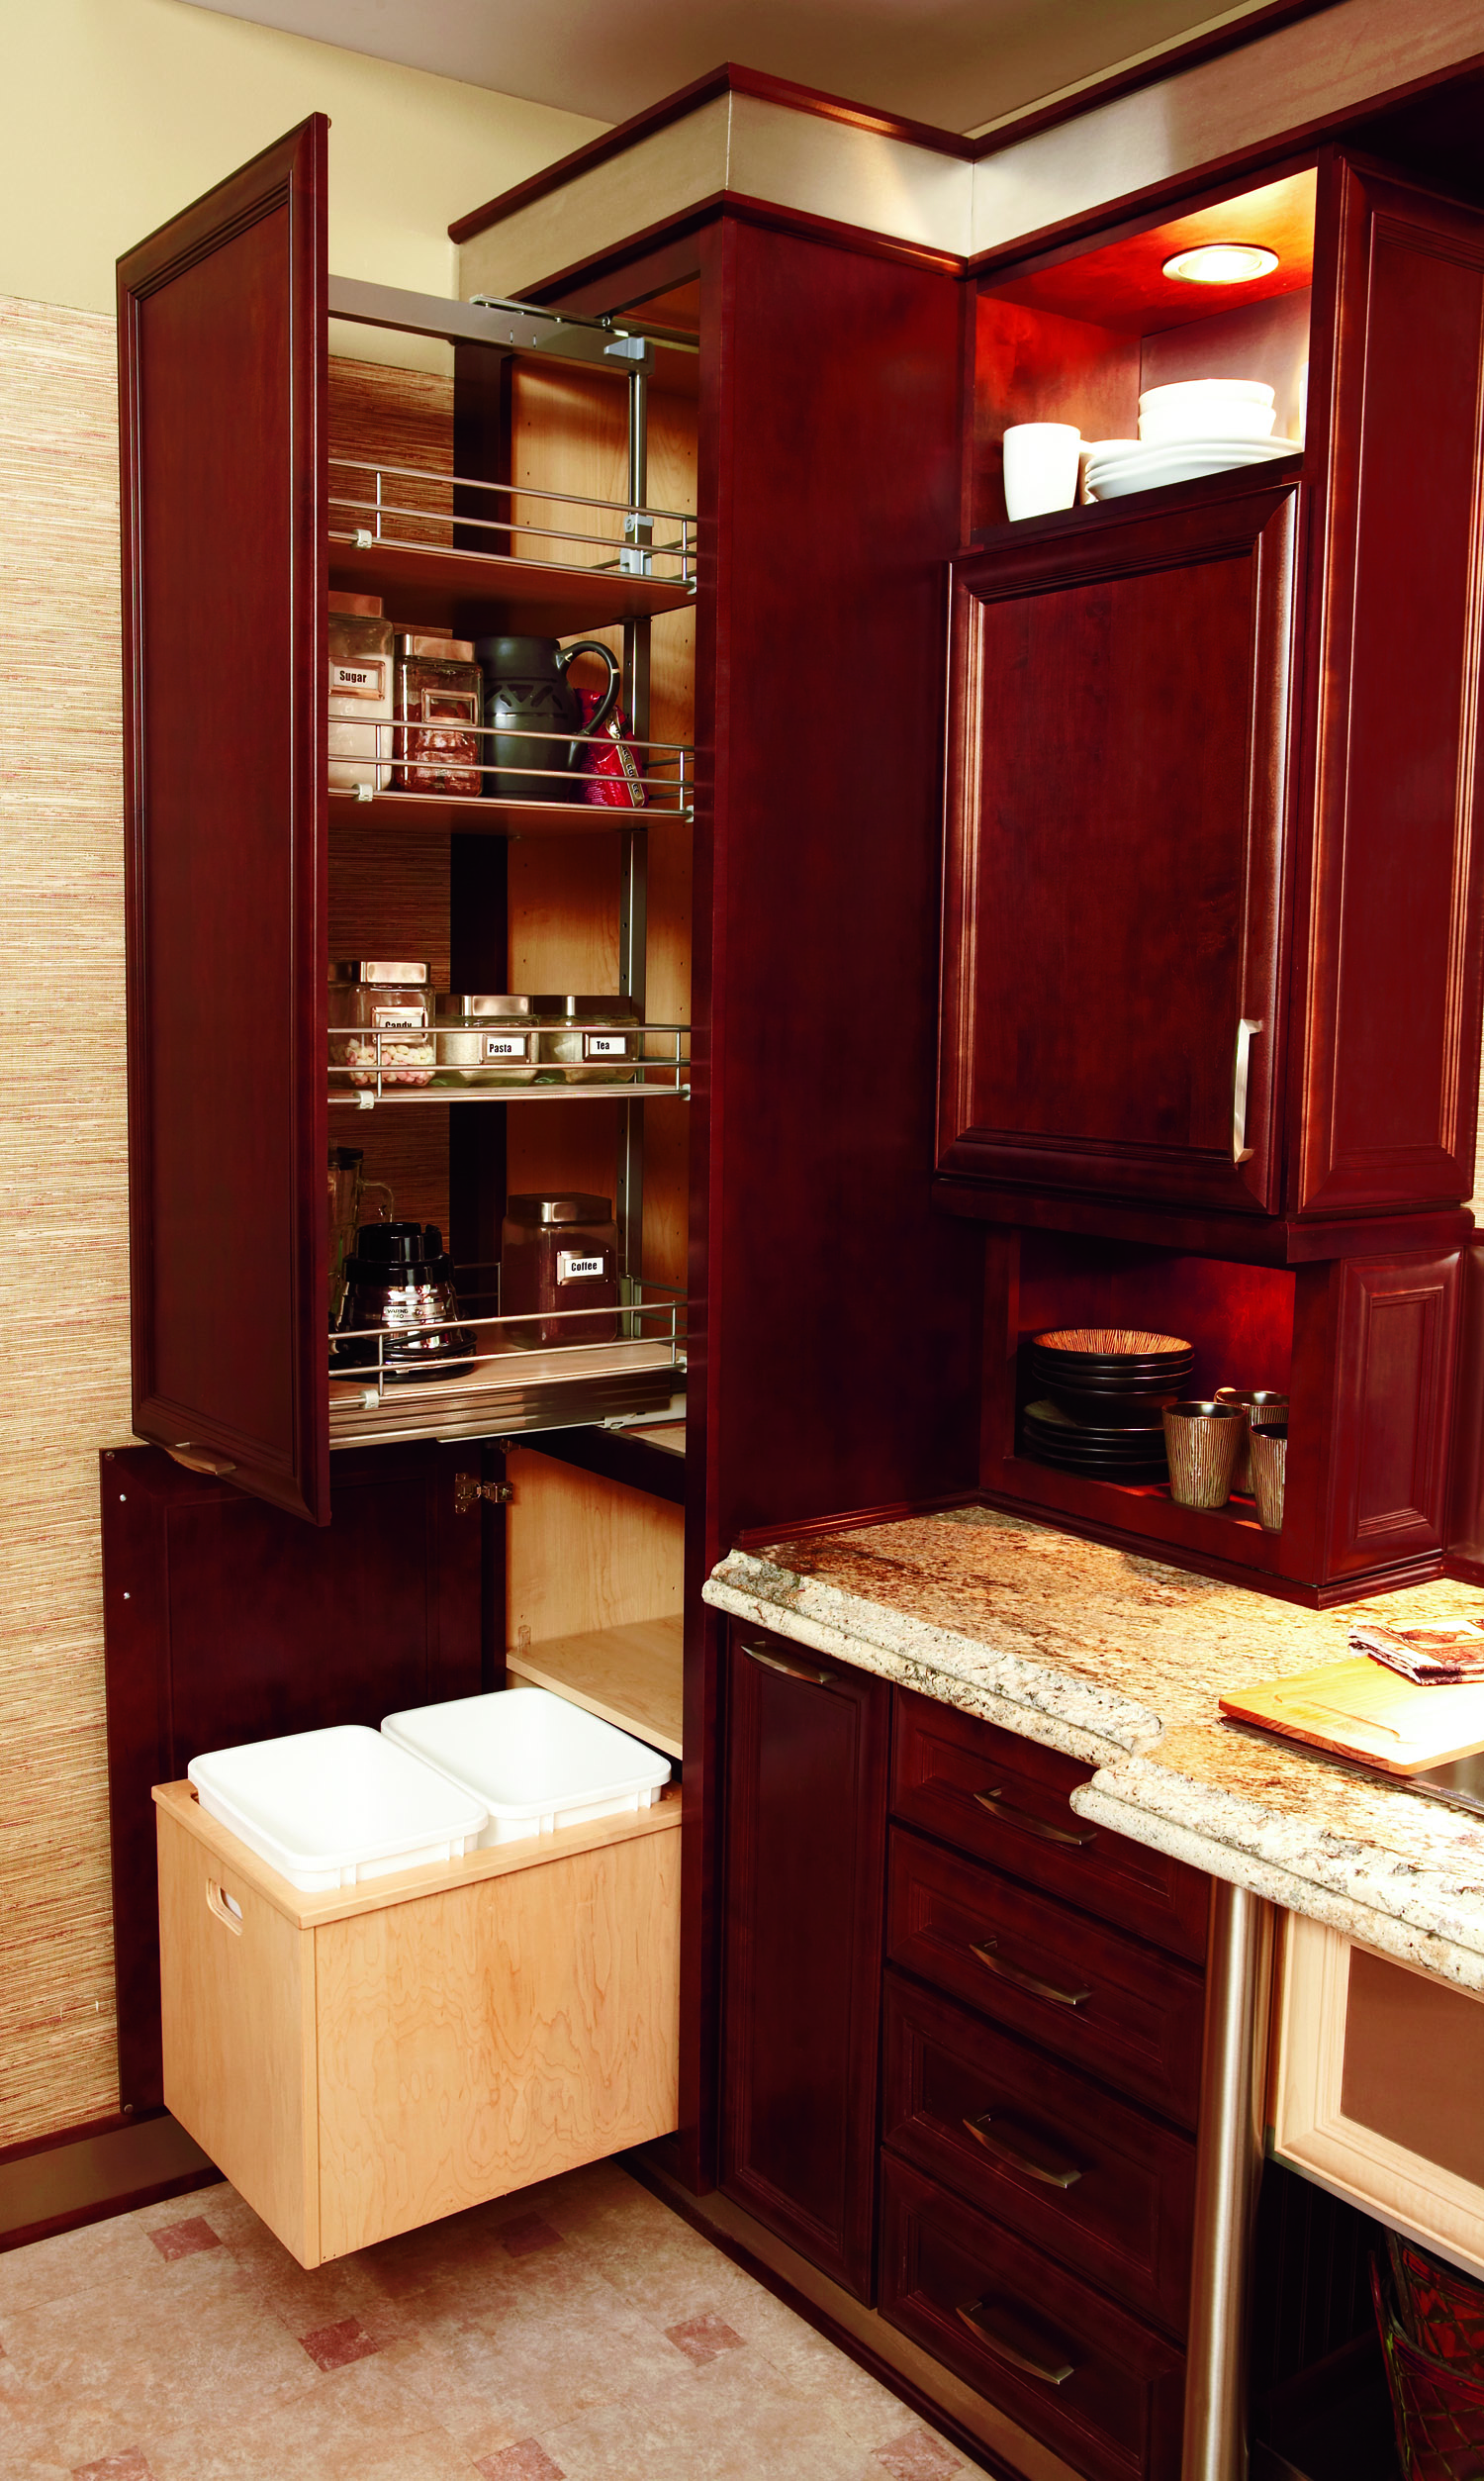 Utility w_Superior Pantry Pullout Inverted Frame SDY_MPL_SEA.jpg